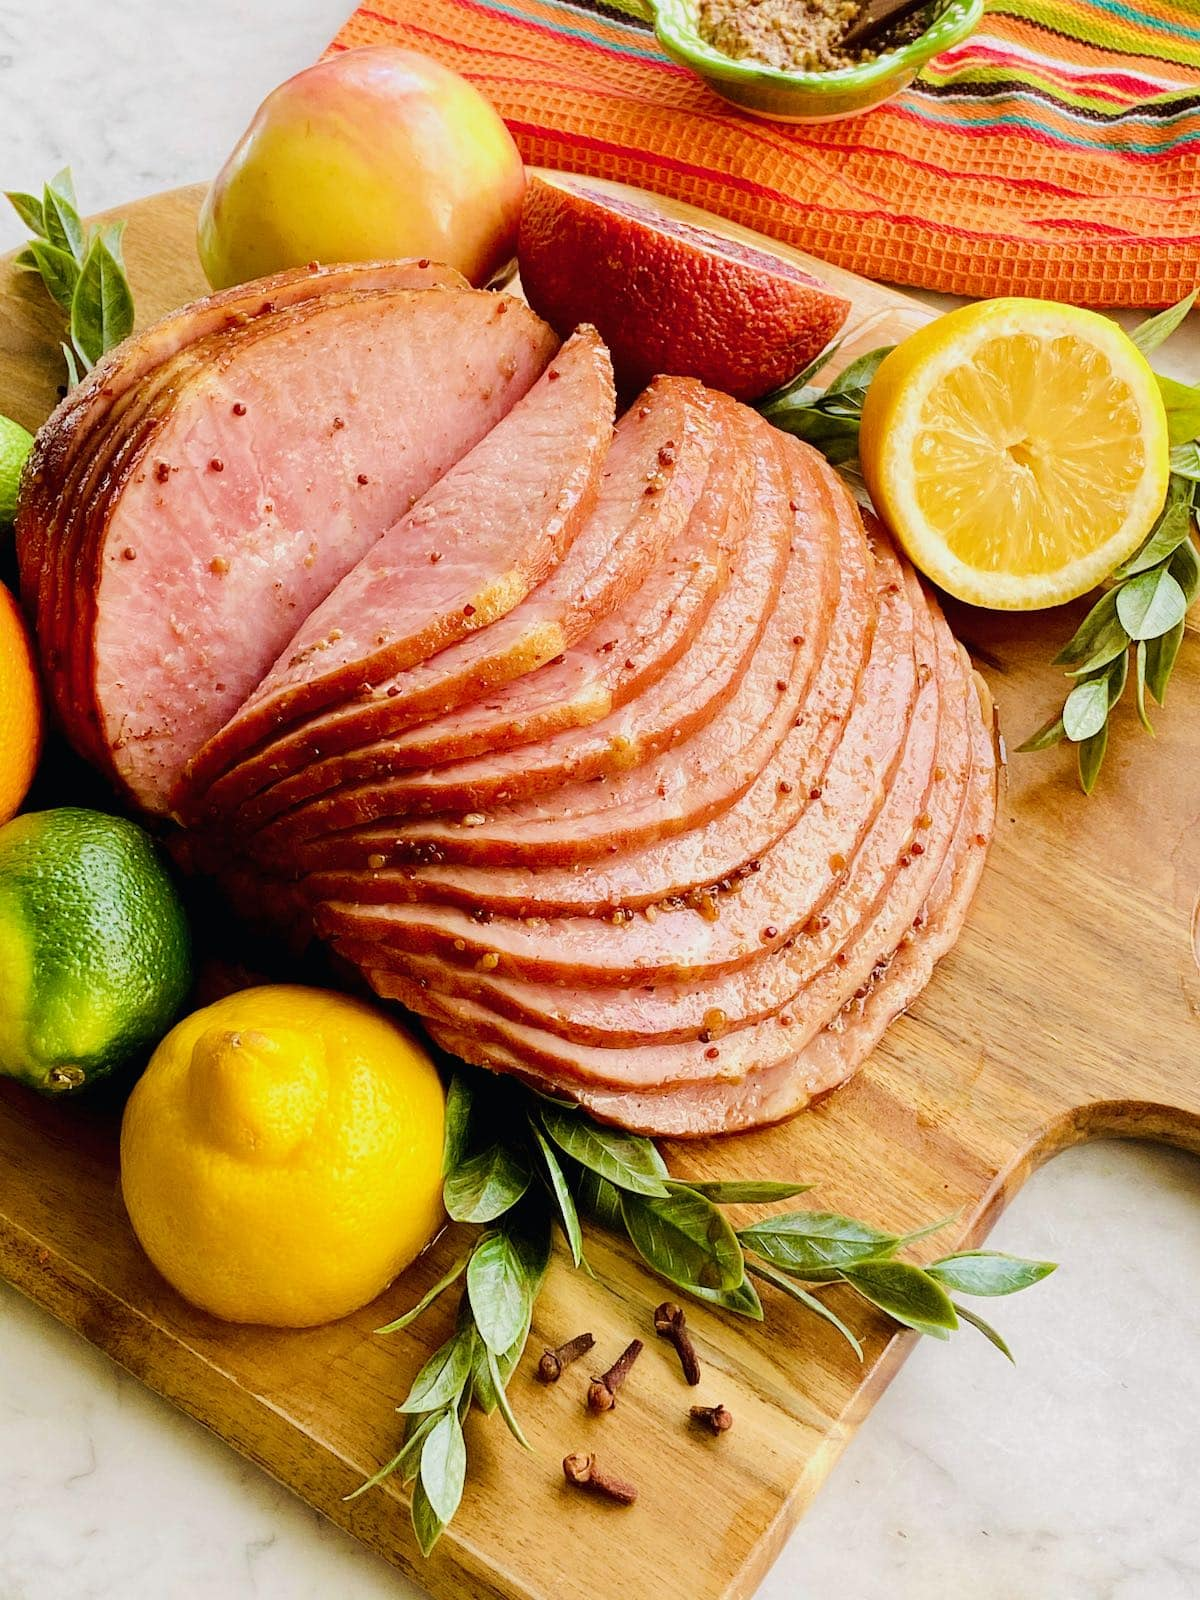 ham with fruit on a wooden board.